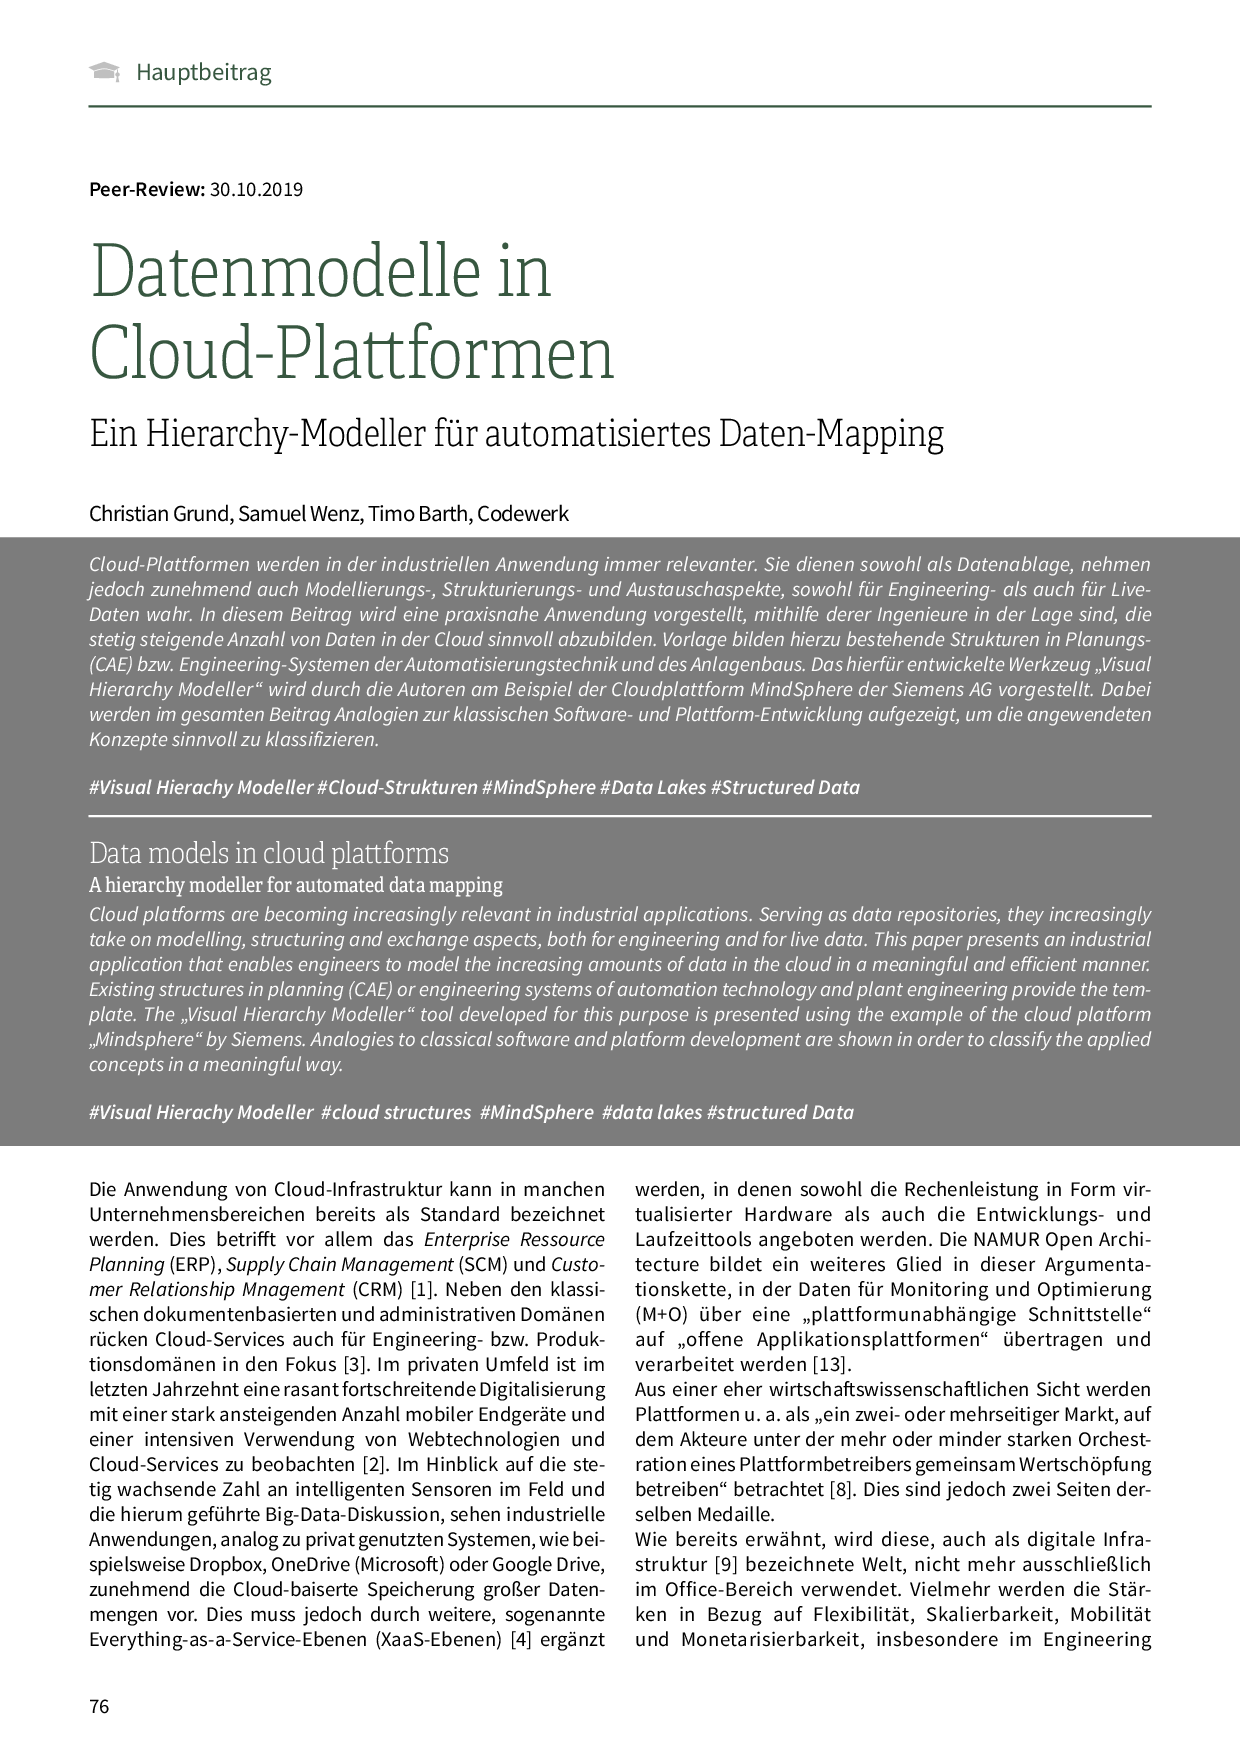 Datenmodelle in Cloud-Plattformen